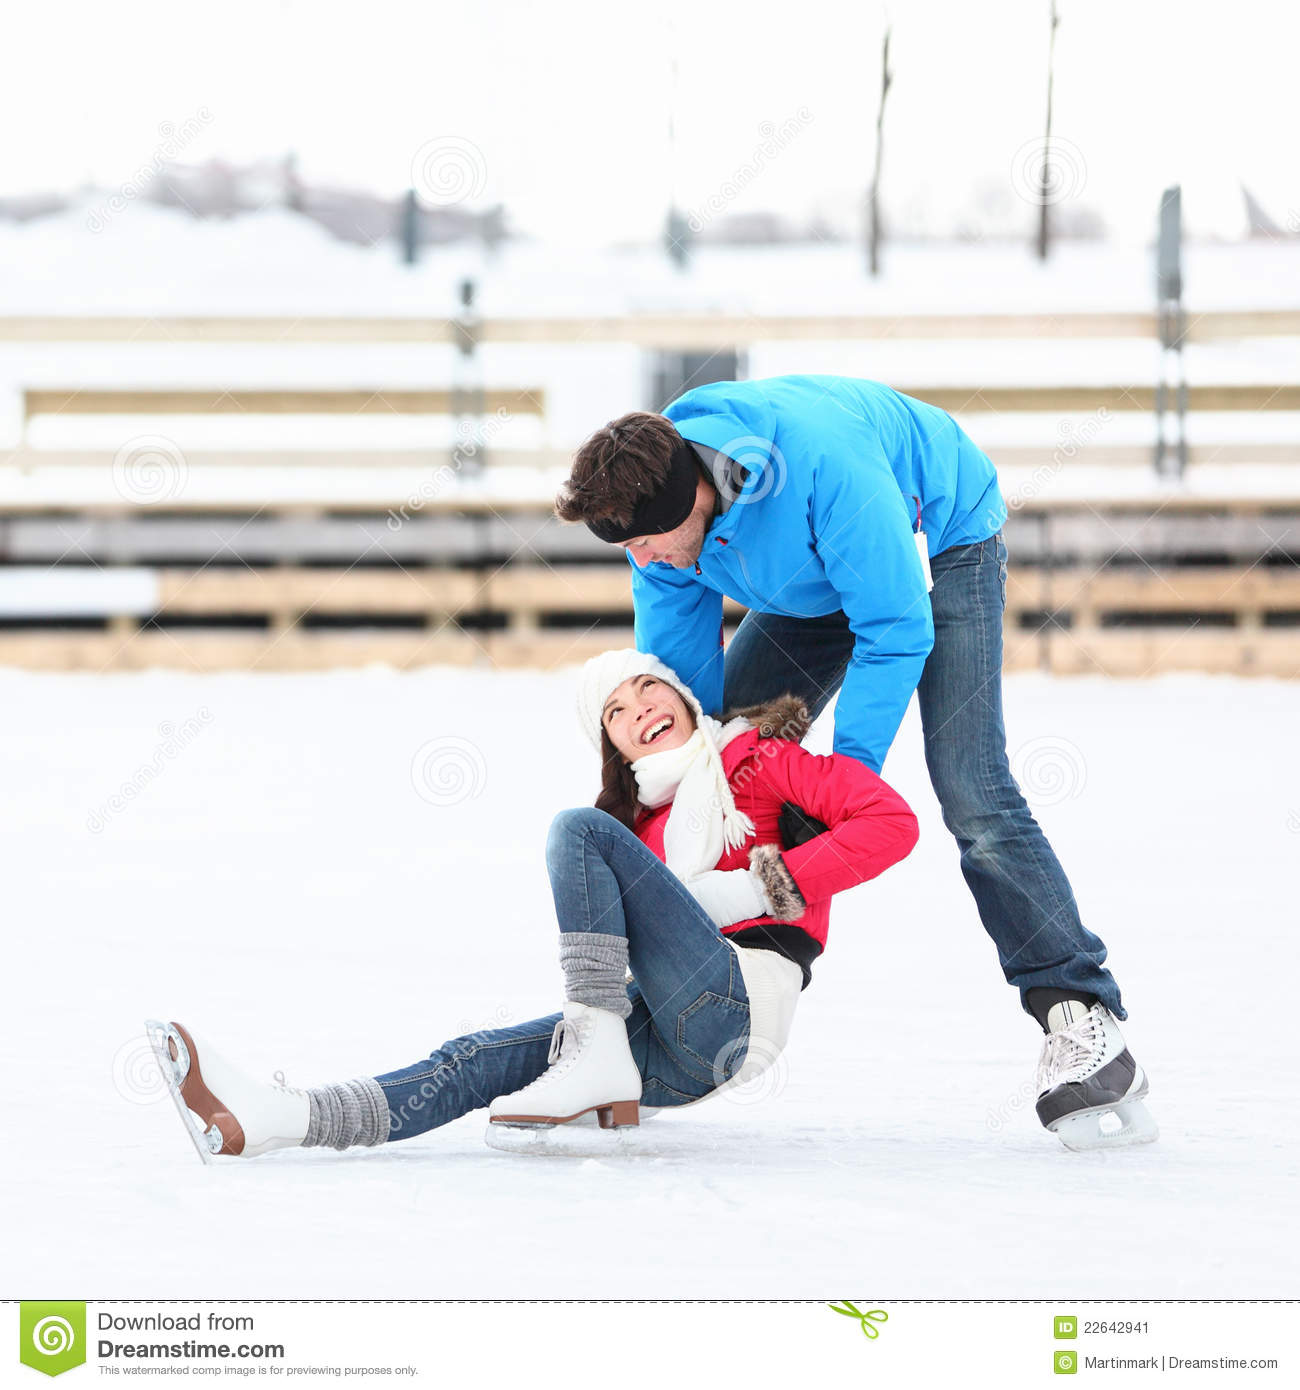 Ice skating couple winter fun